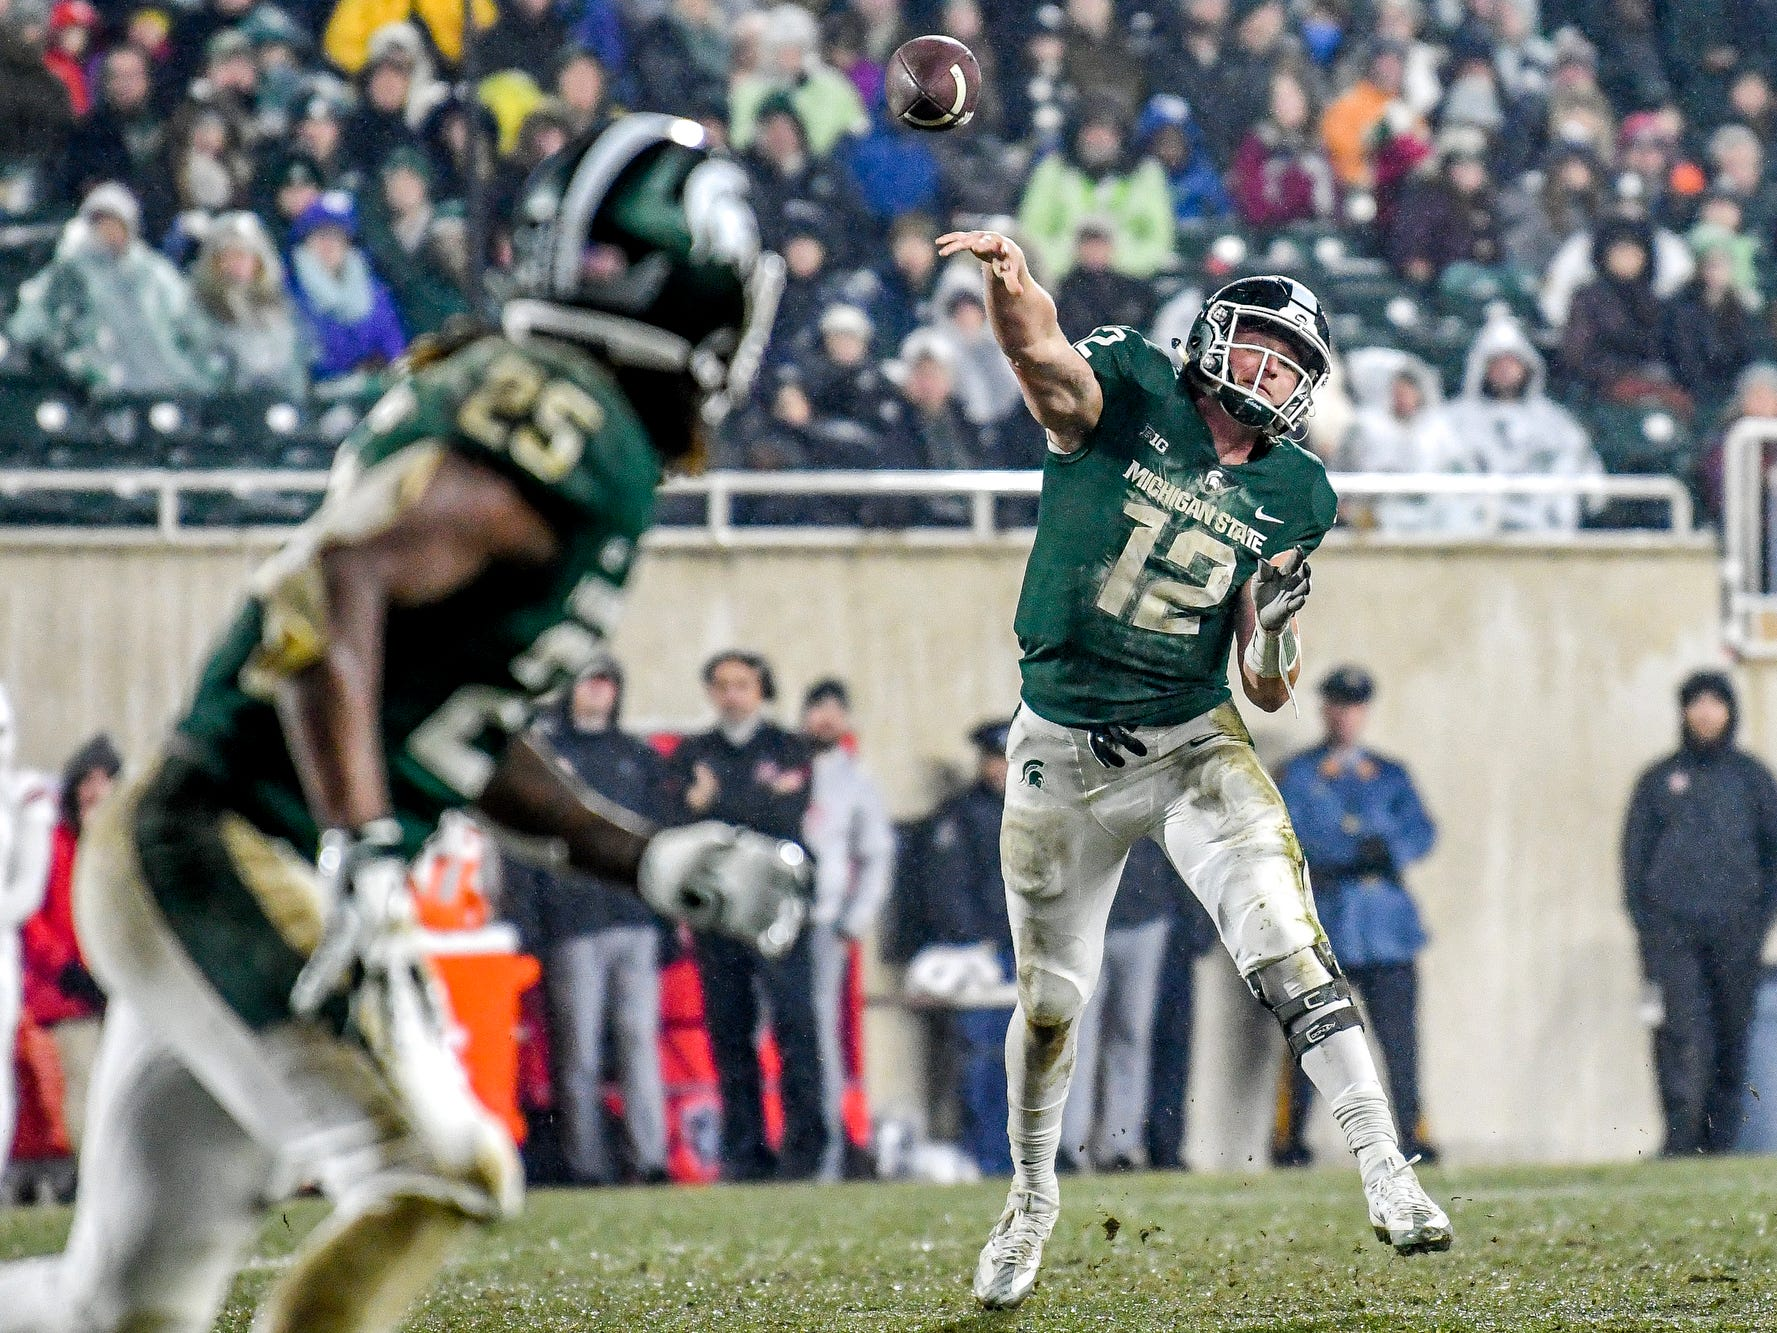 Michigan State's quarterback Rocky Lombardi, right, throws a pass to Darrell Stewart Jr. in the end zone during the second quarter on Saturday, Nov. 24, 2018, at Spartan Stadium in East Lansing. The pass was incomplete.